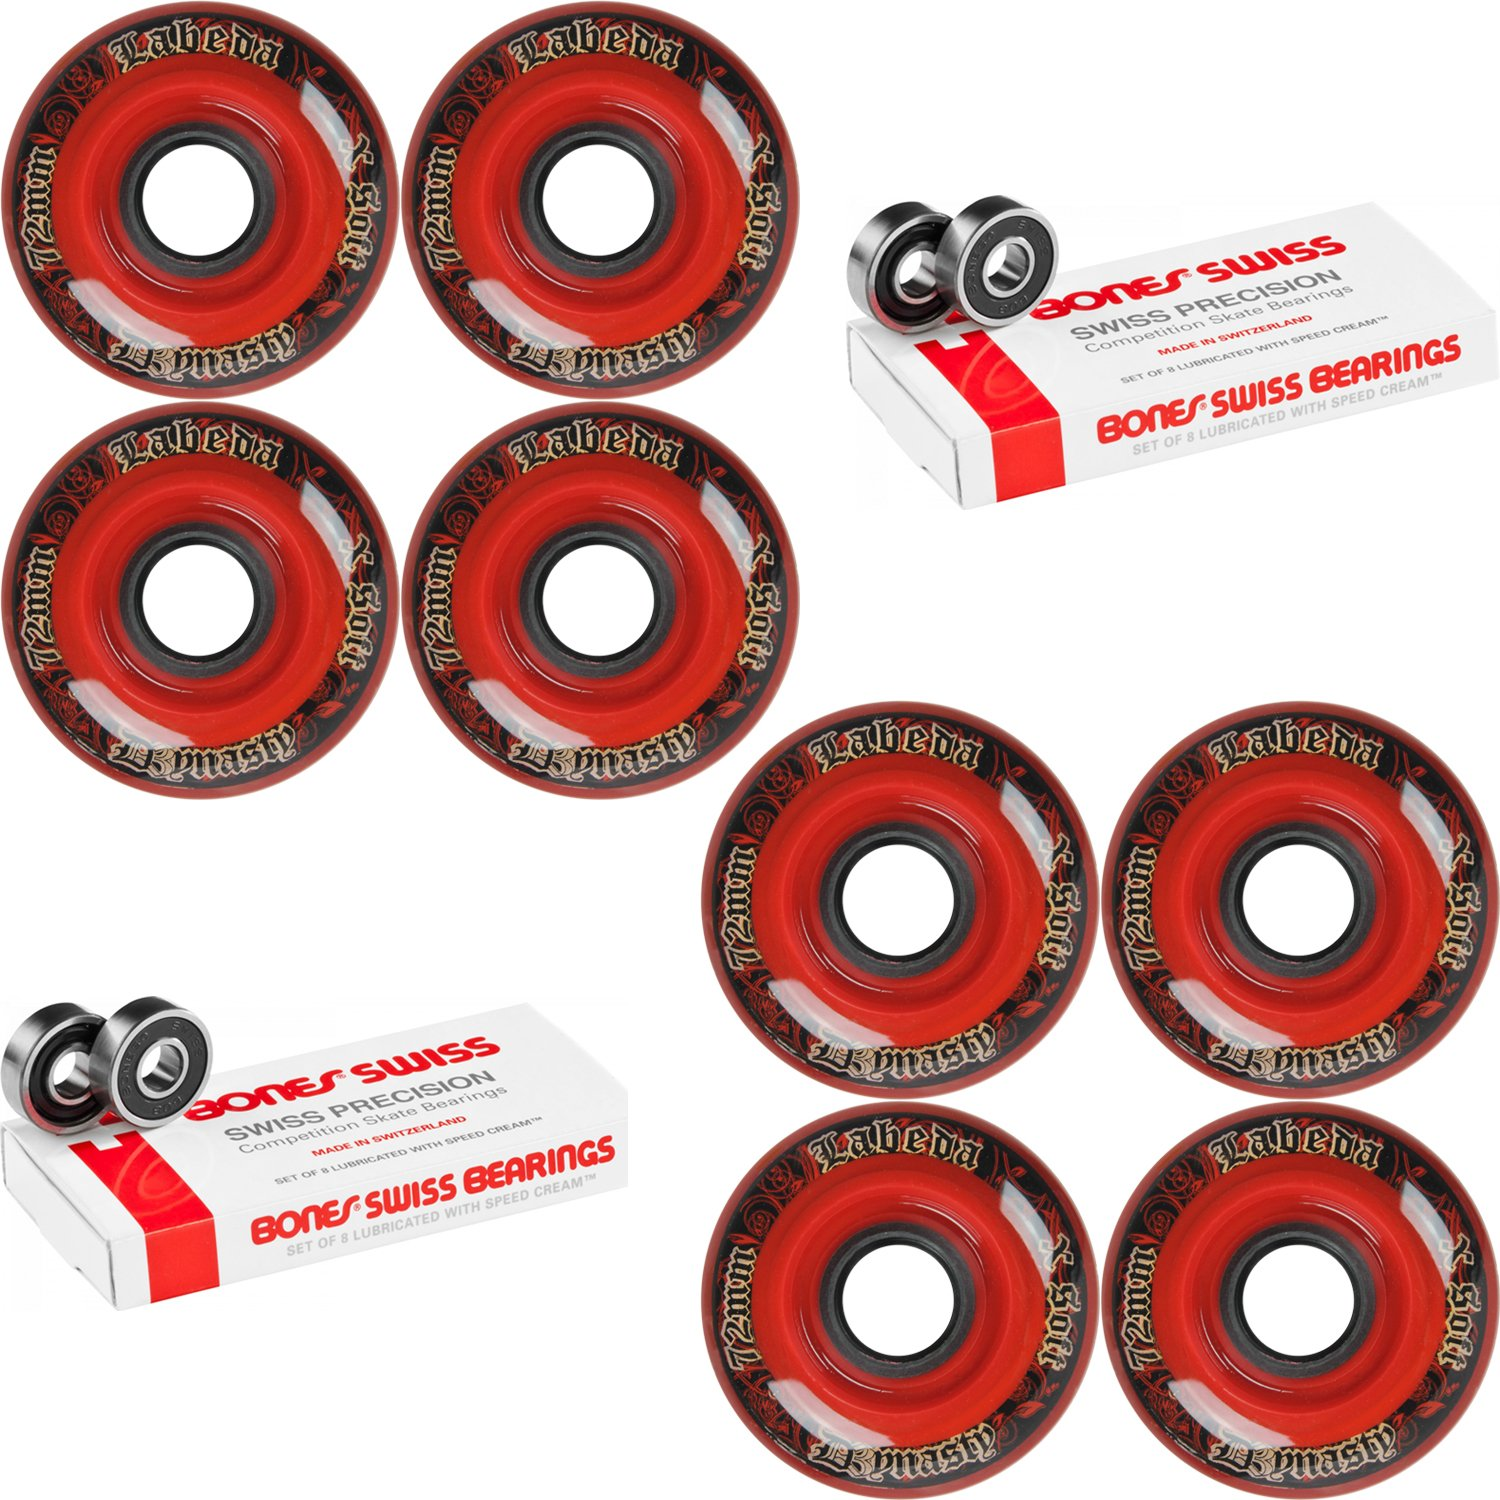 Labeda WHEELS Inline Hockey DYNASTY 3 72mm X-SOFT Red 8-Pack Bones Swiss by Labeda